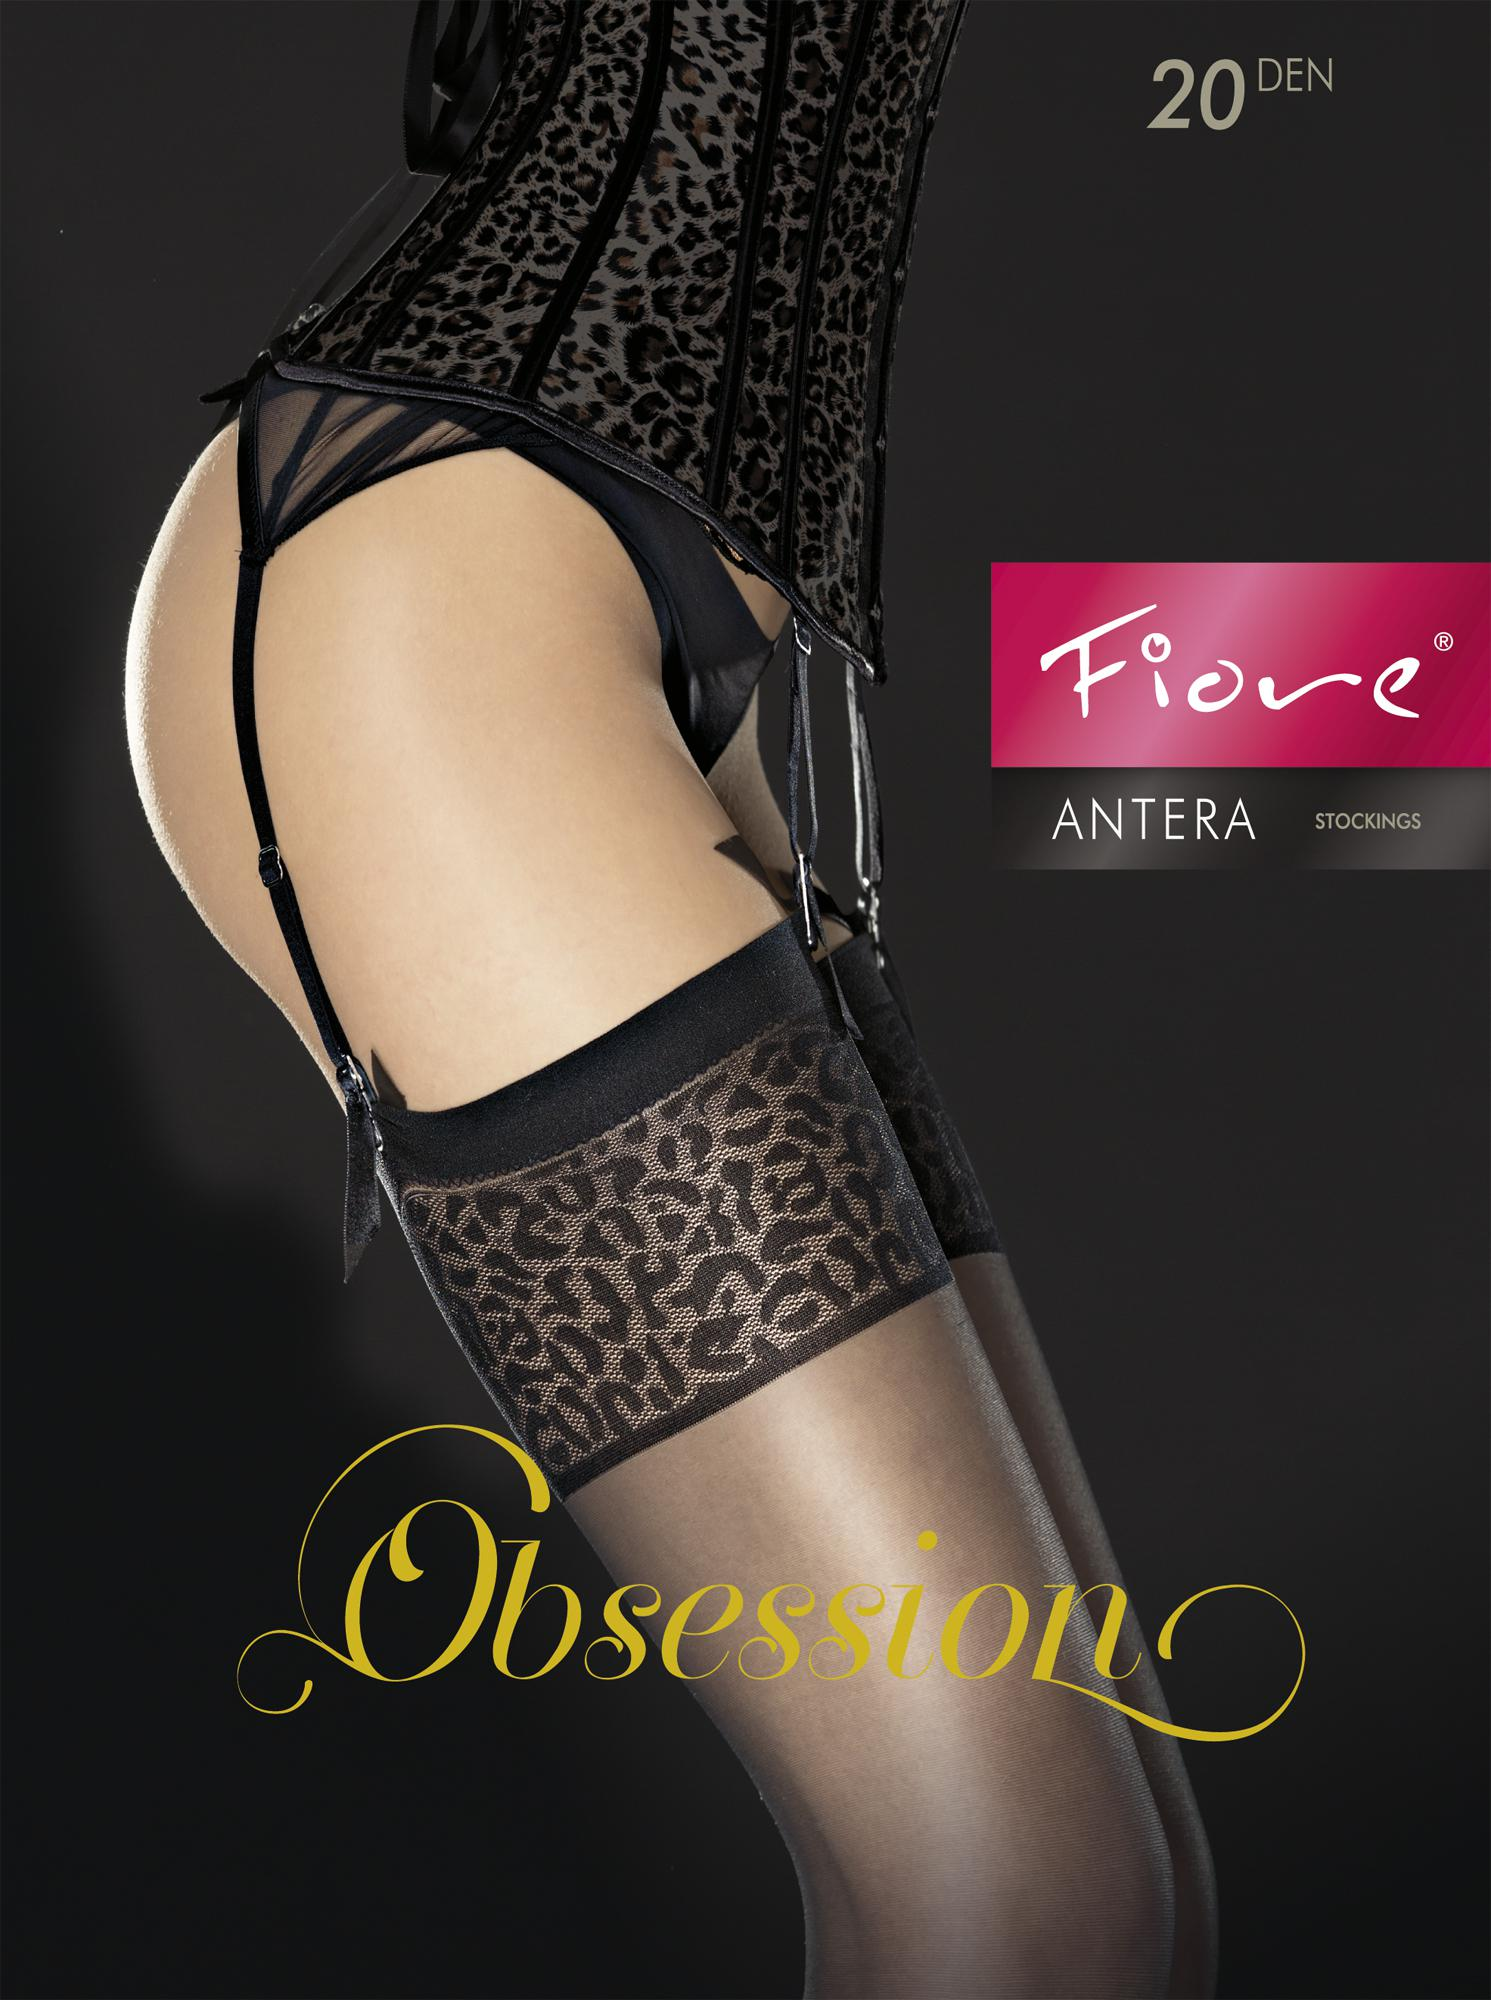 ANTERA 20 den belt stockings by Fiore with leopard print top